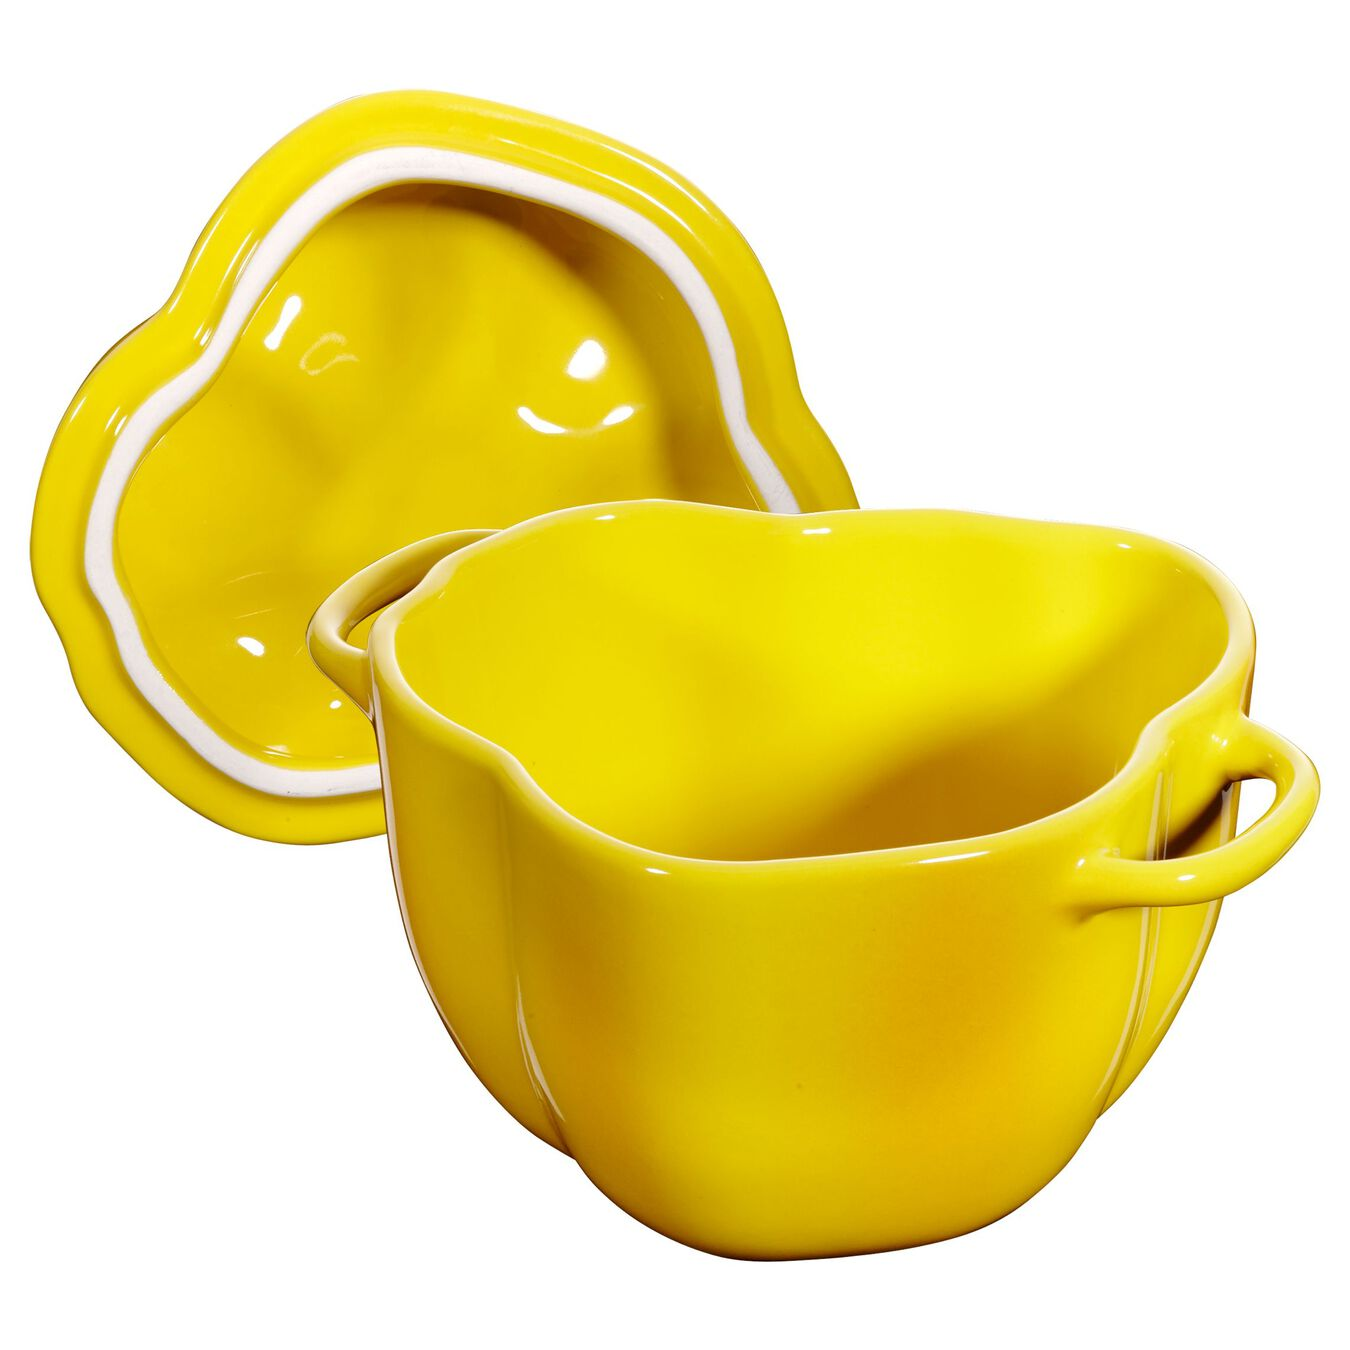 450 ml pepper Cocotte, yellow,,large 4